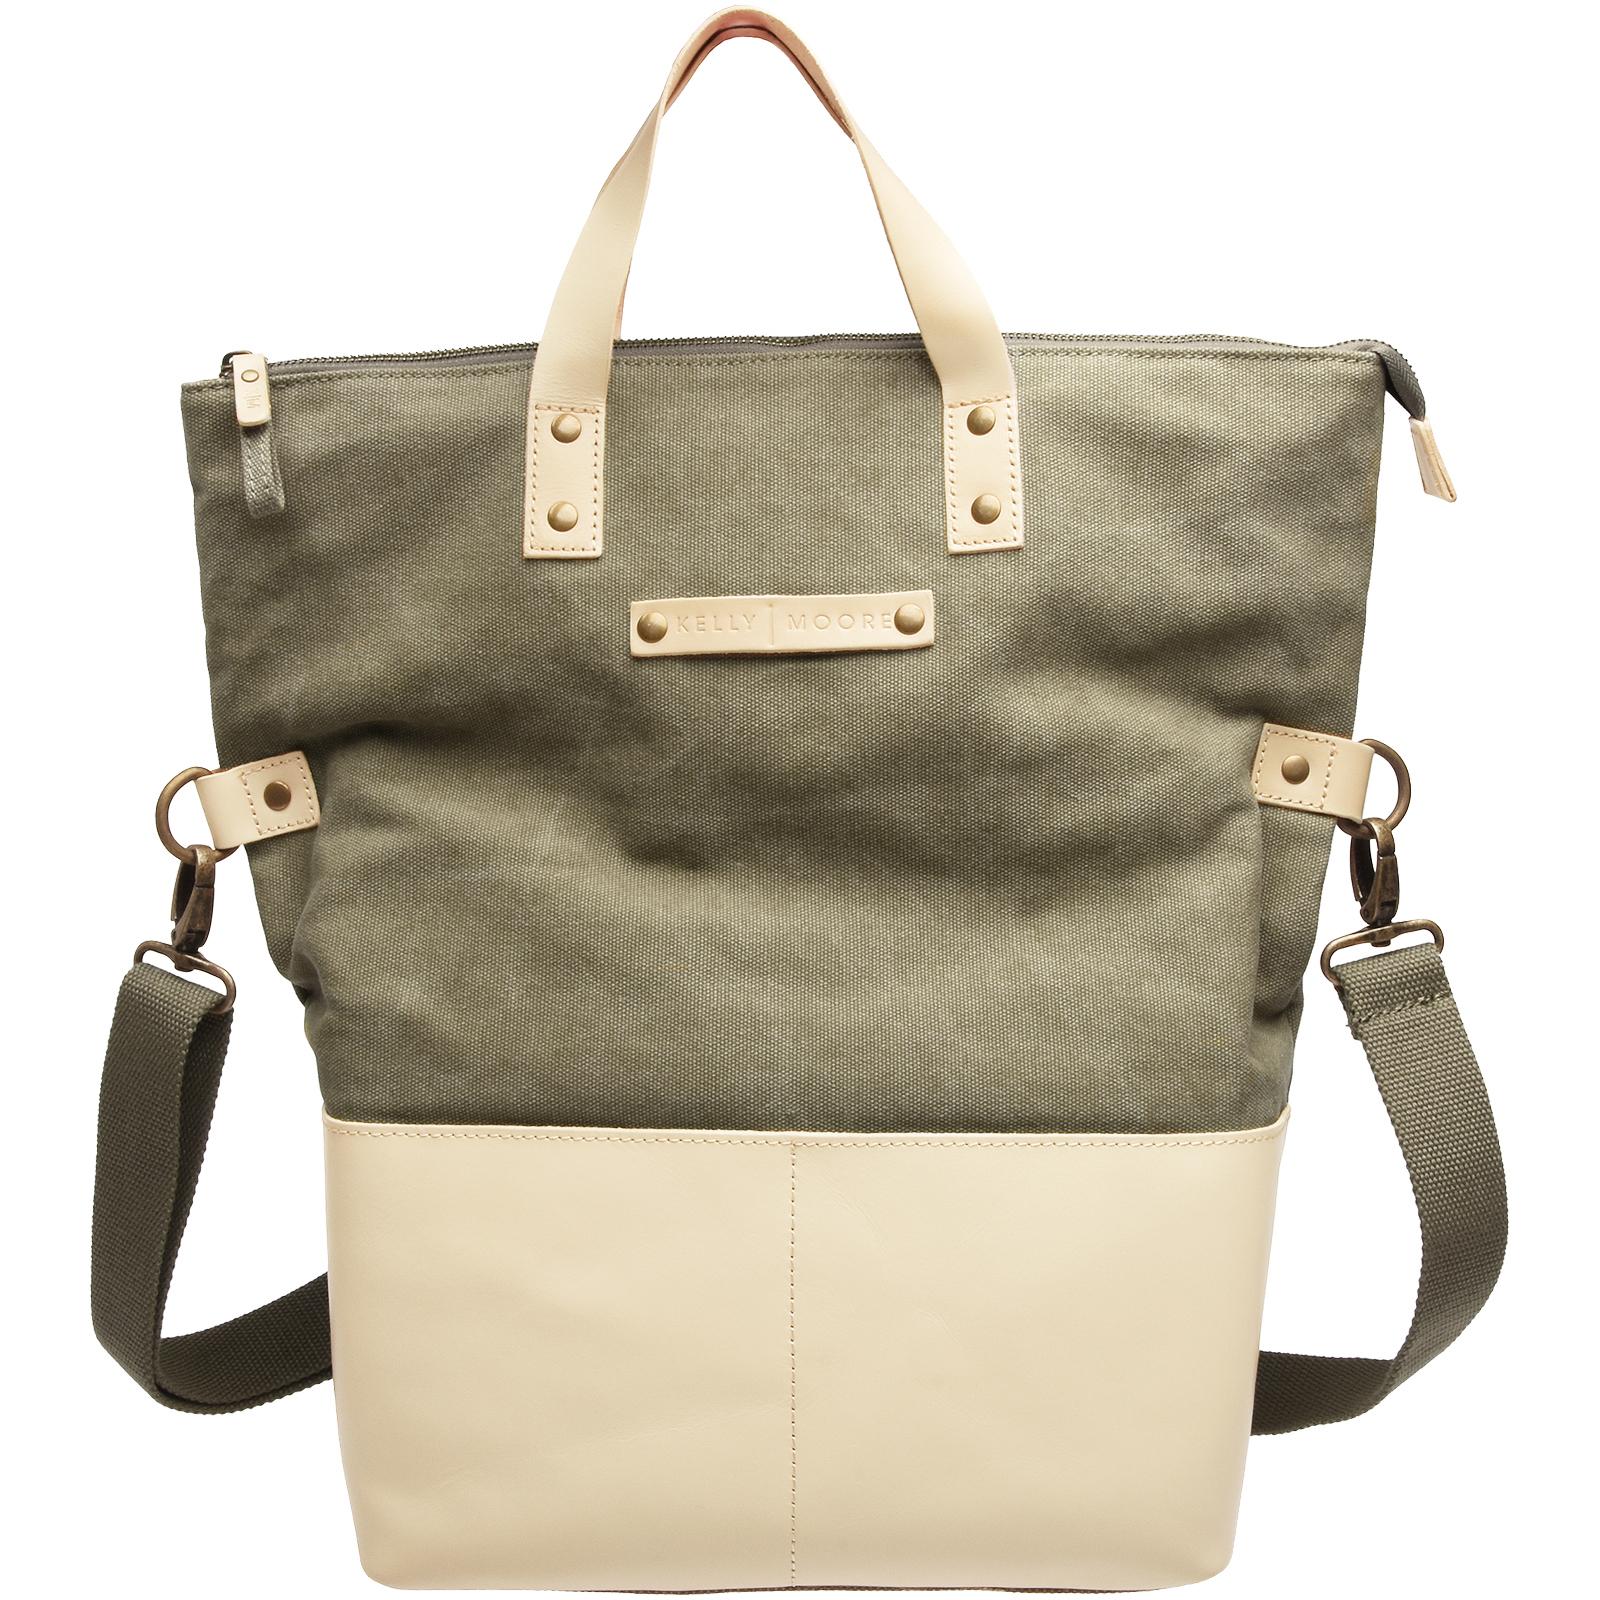 Kelly Moore Collins Camera/Travel Bag with Shoulder & Mes...